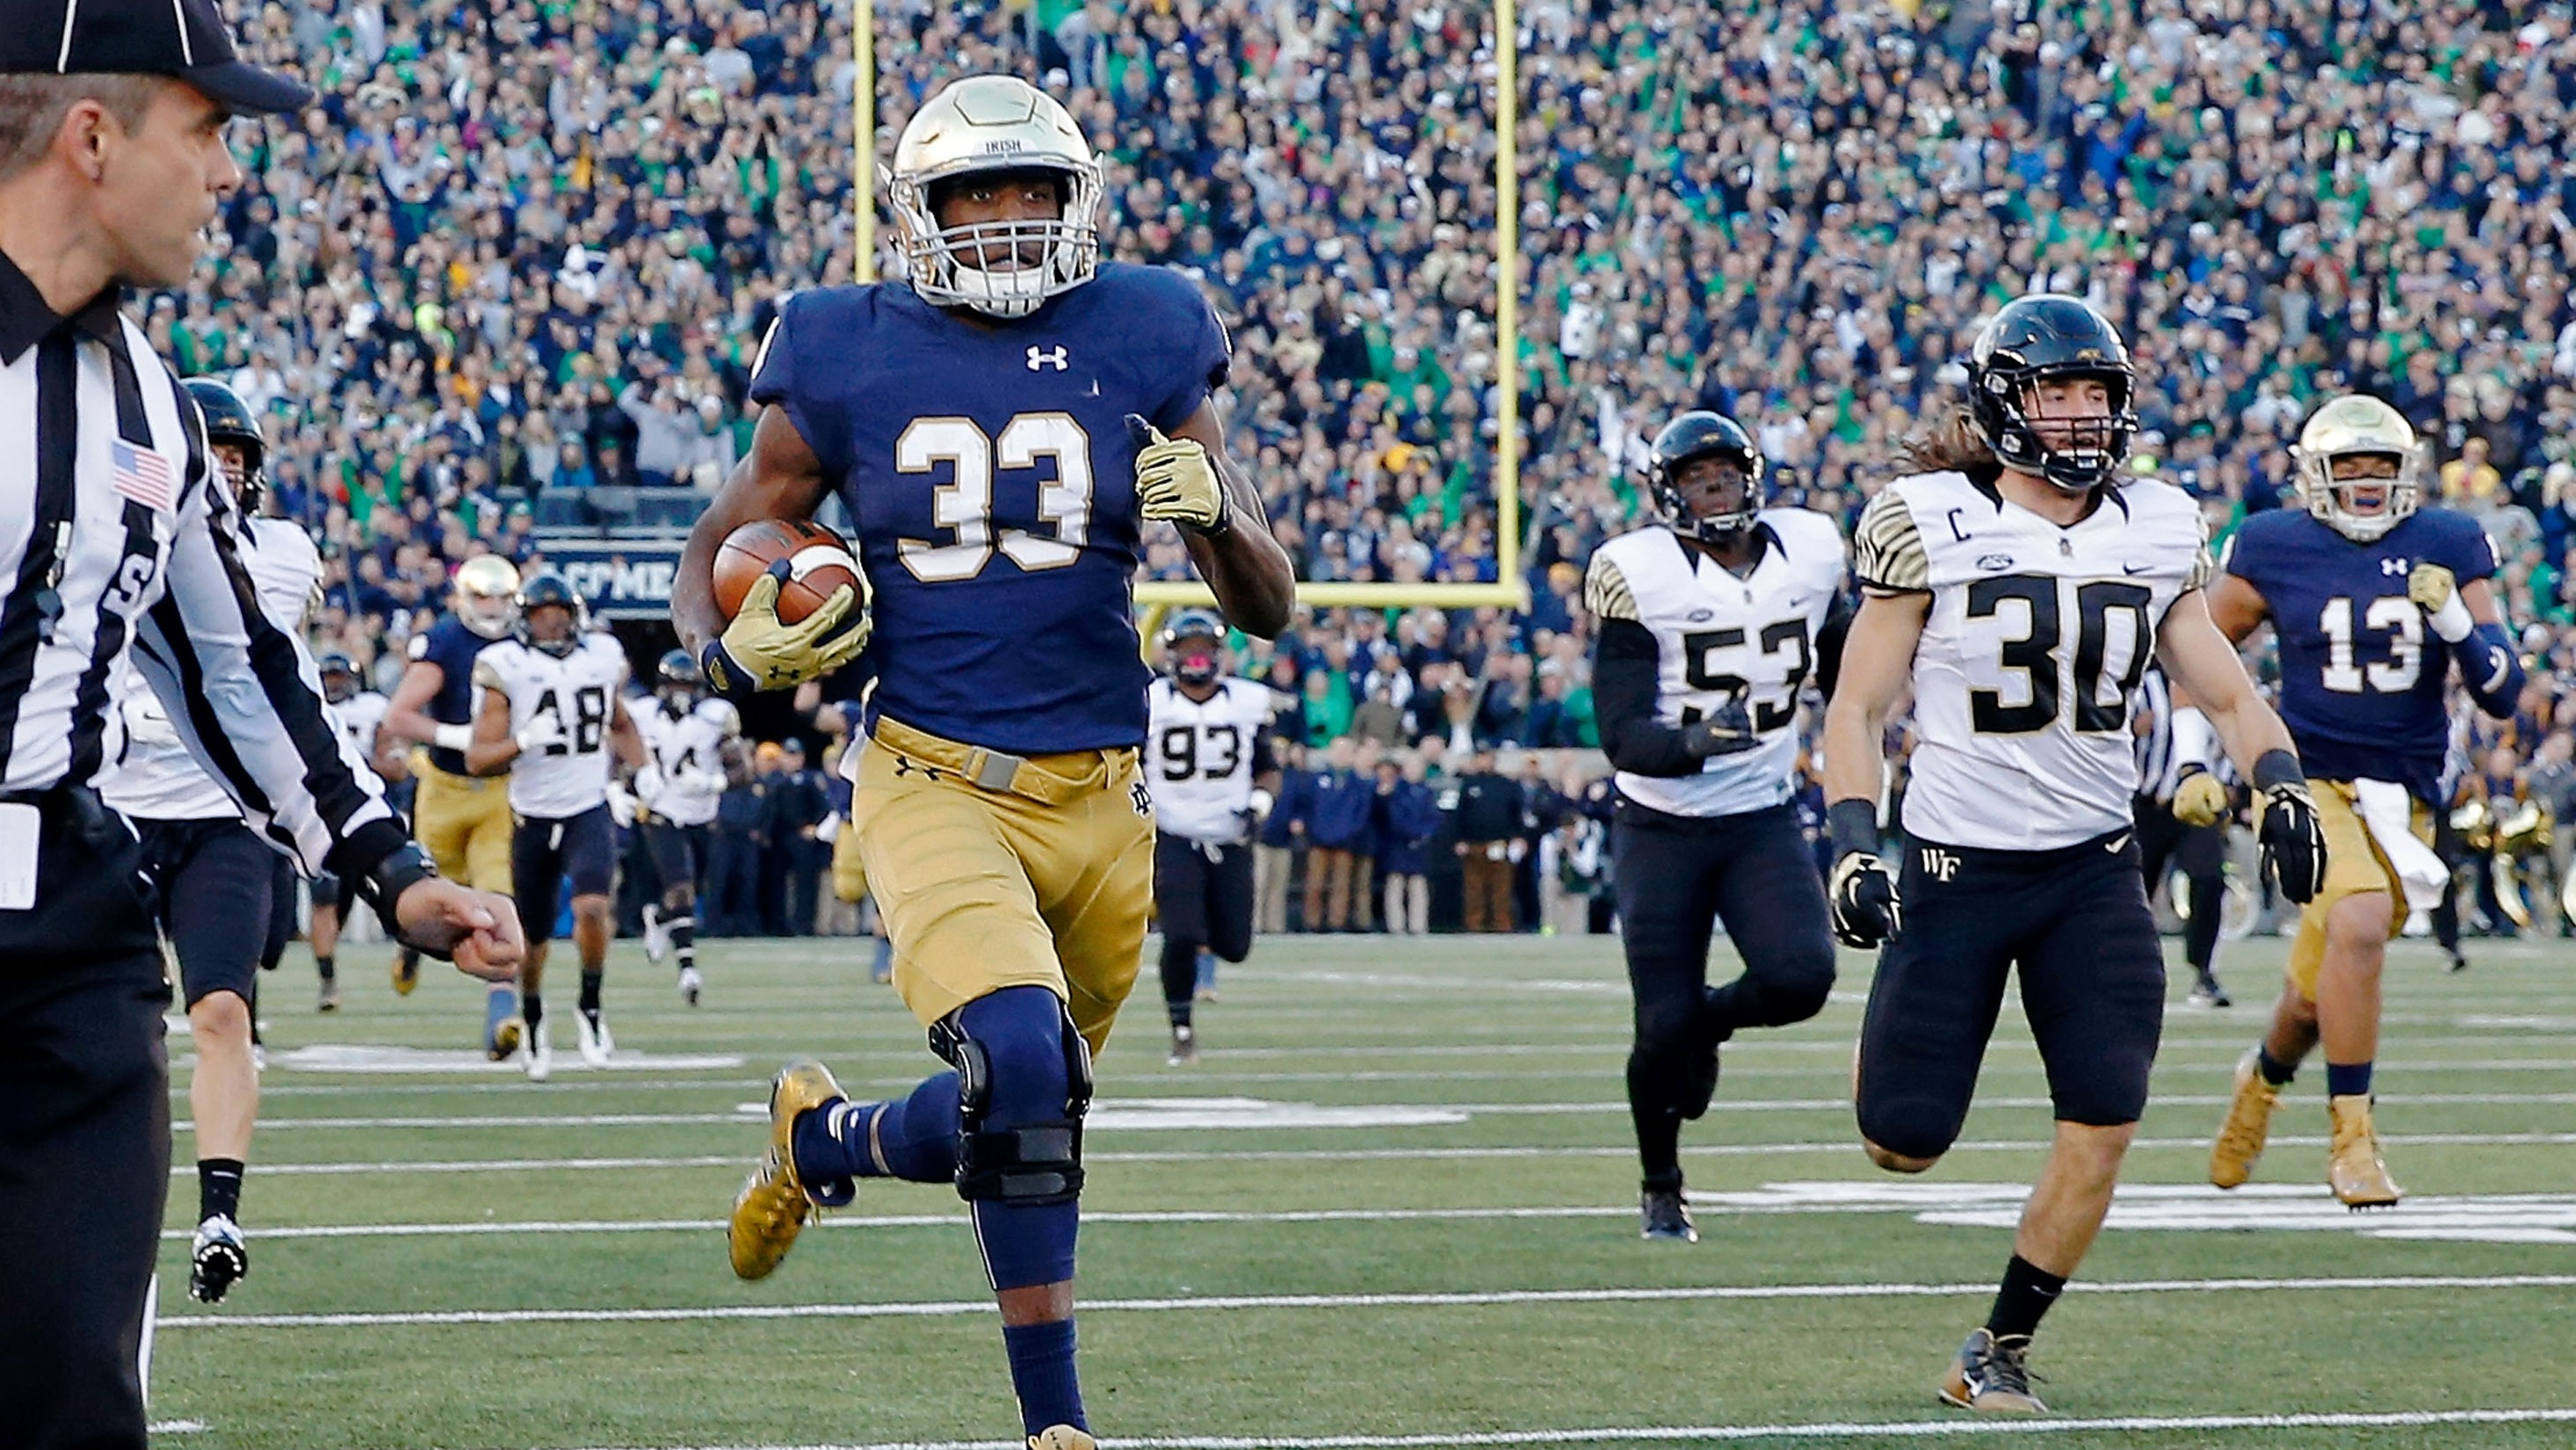 SOUTH BEND, IN - NOVEMBER 14: Josh Adams #33 of the Notre Dame Fighting Irish rushes for a 98-yard touchdown against the Wake Forest Demon Deacons during the second quarter at Notre Dame Stadium on November 14, 2015 in South Bend, Indiana. (Photo by Jon Durr/Getty Images)